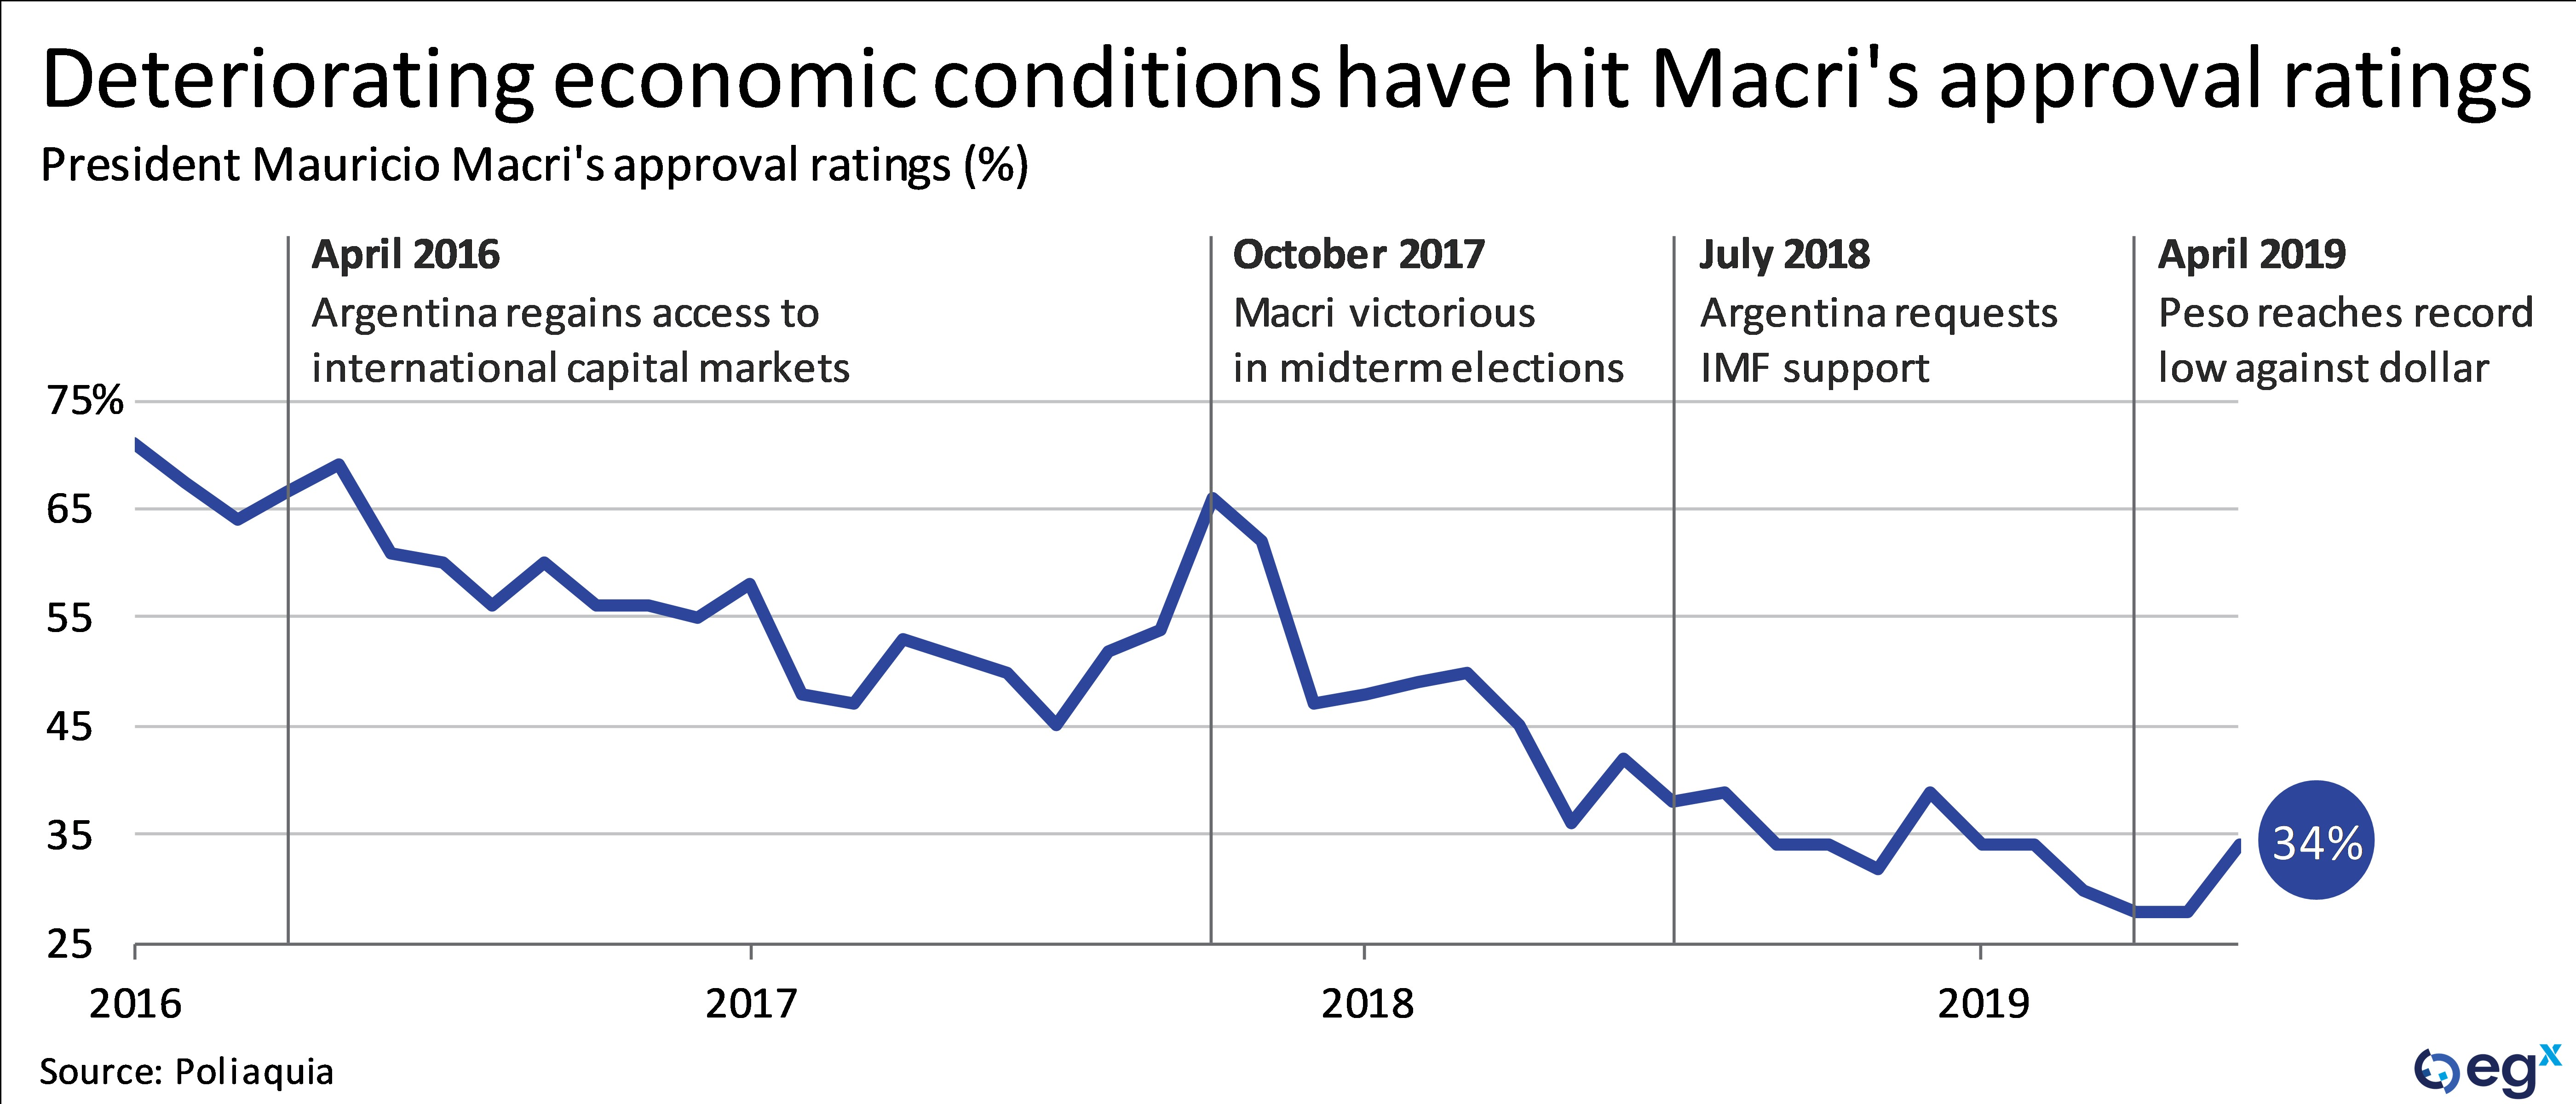 Deteriorating economic conditions have hit Mauricio Macri's approval ratings